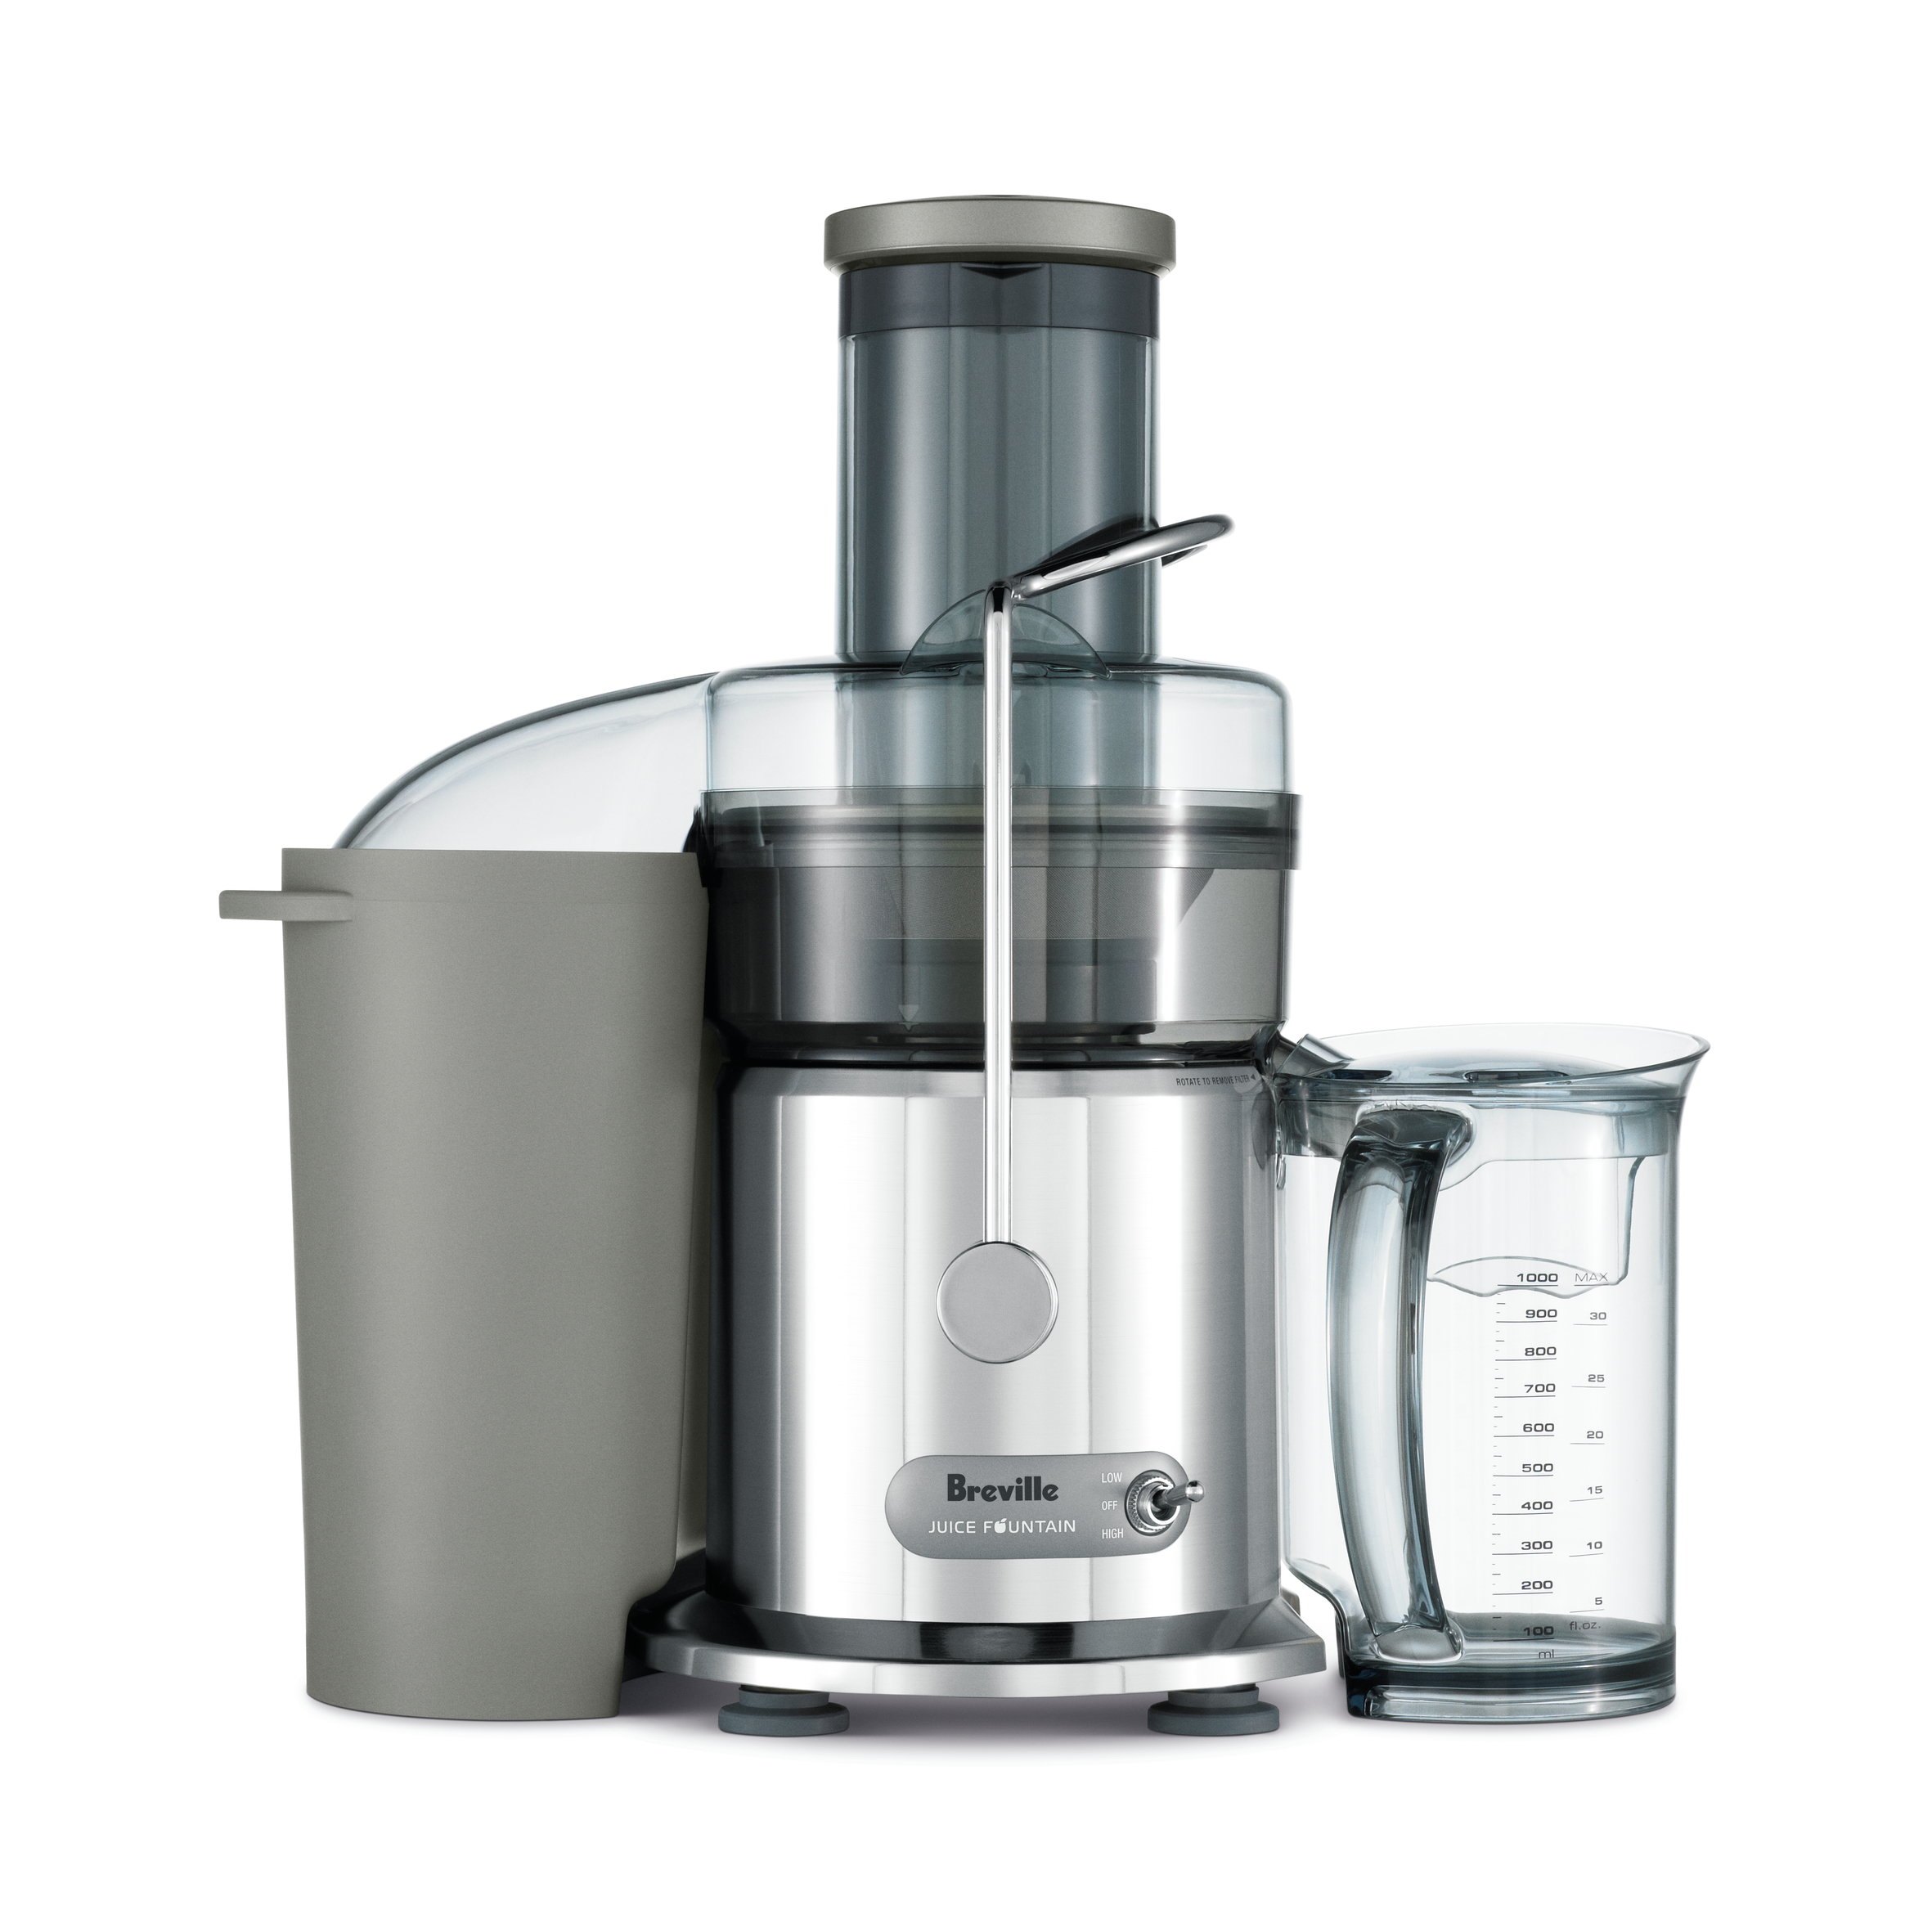 Breville All In One Food Processor Price